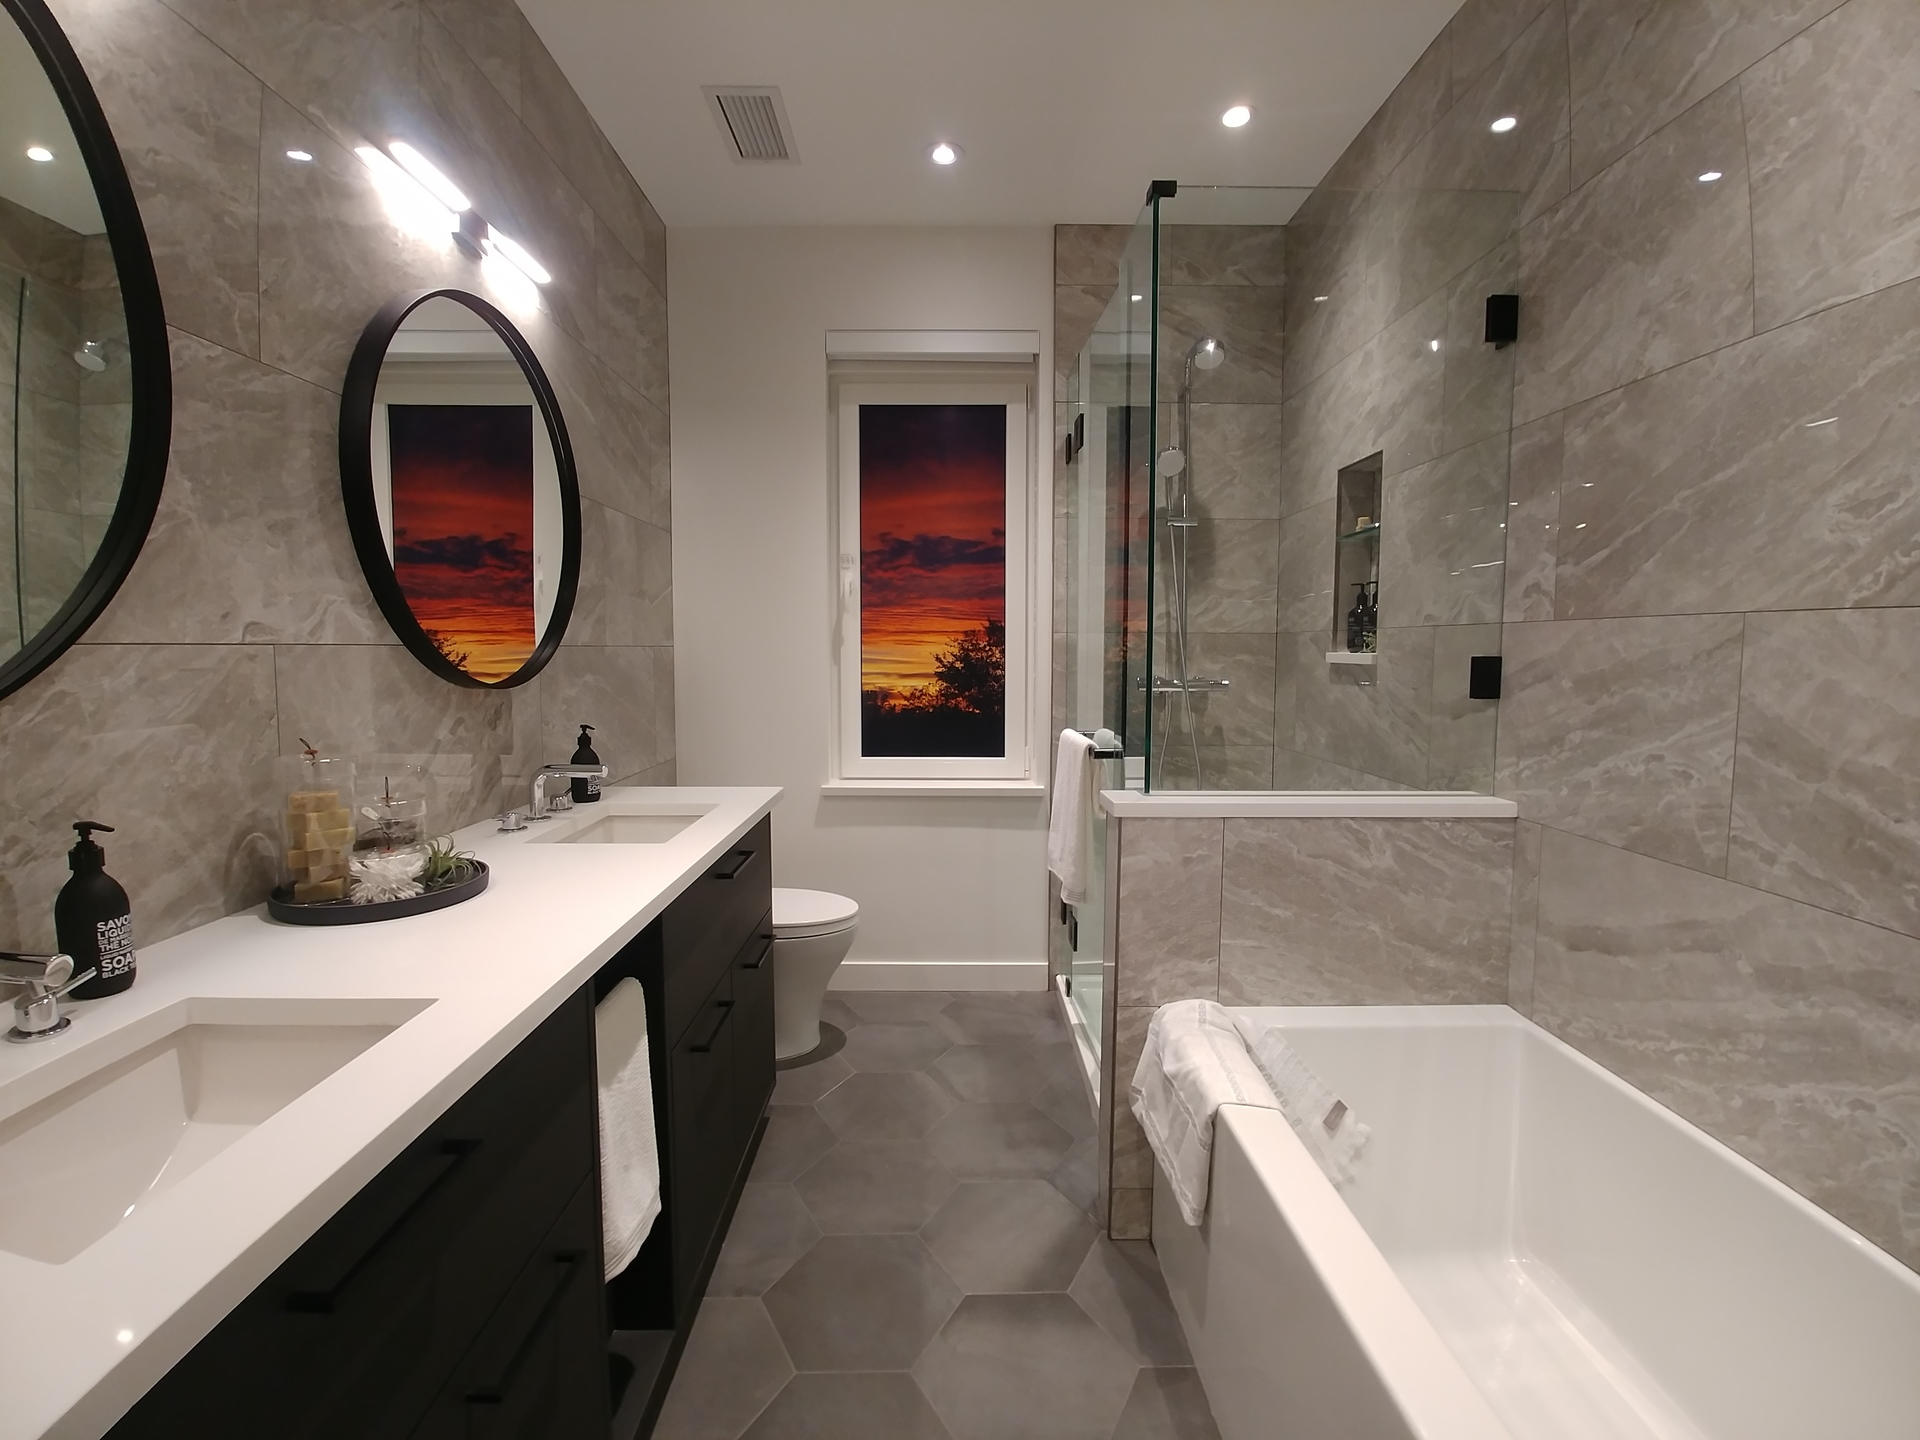 skagen-ensuite at Skagen townhomes (606 Foster Avenue, Coquitlam West, Coquitlam)